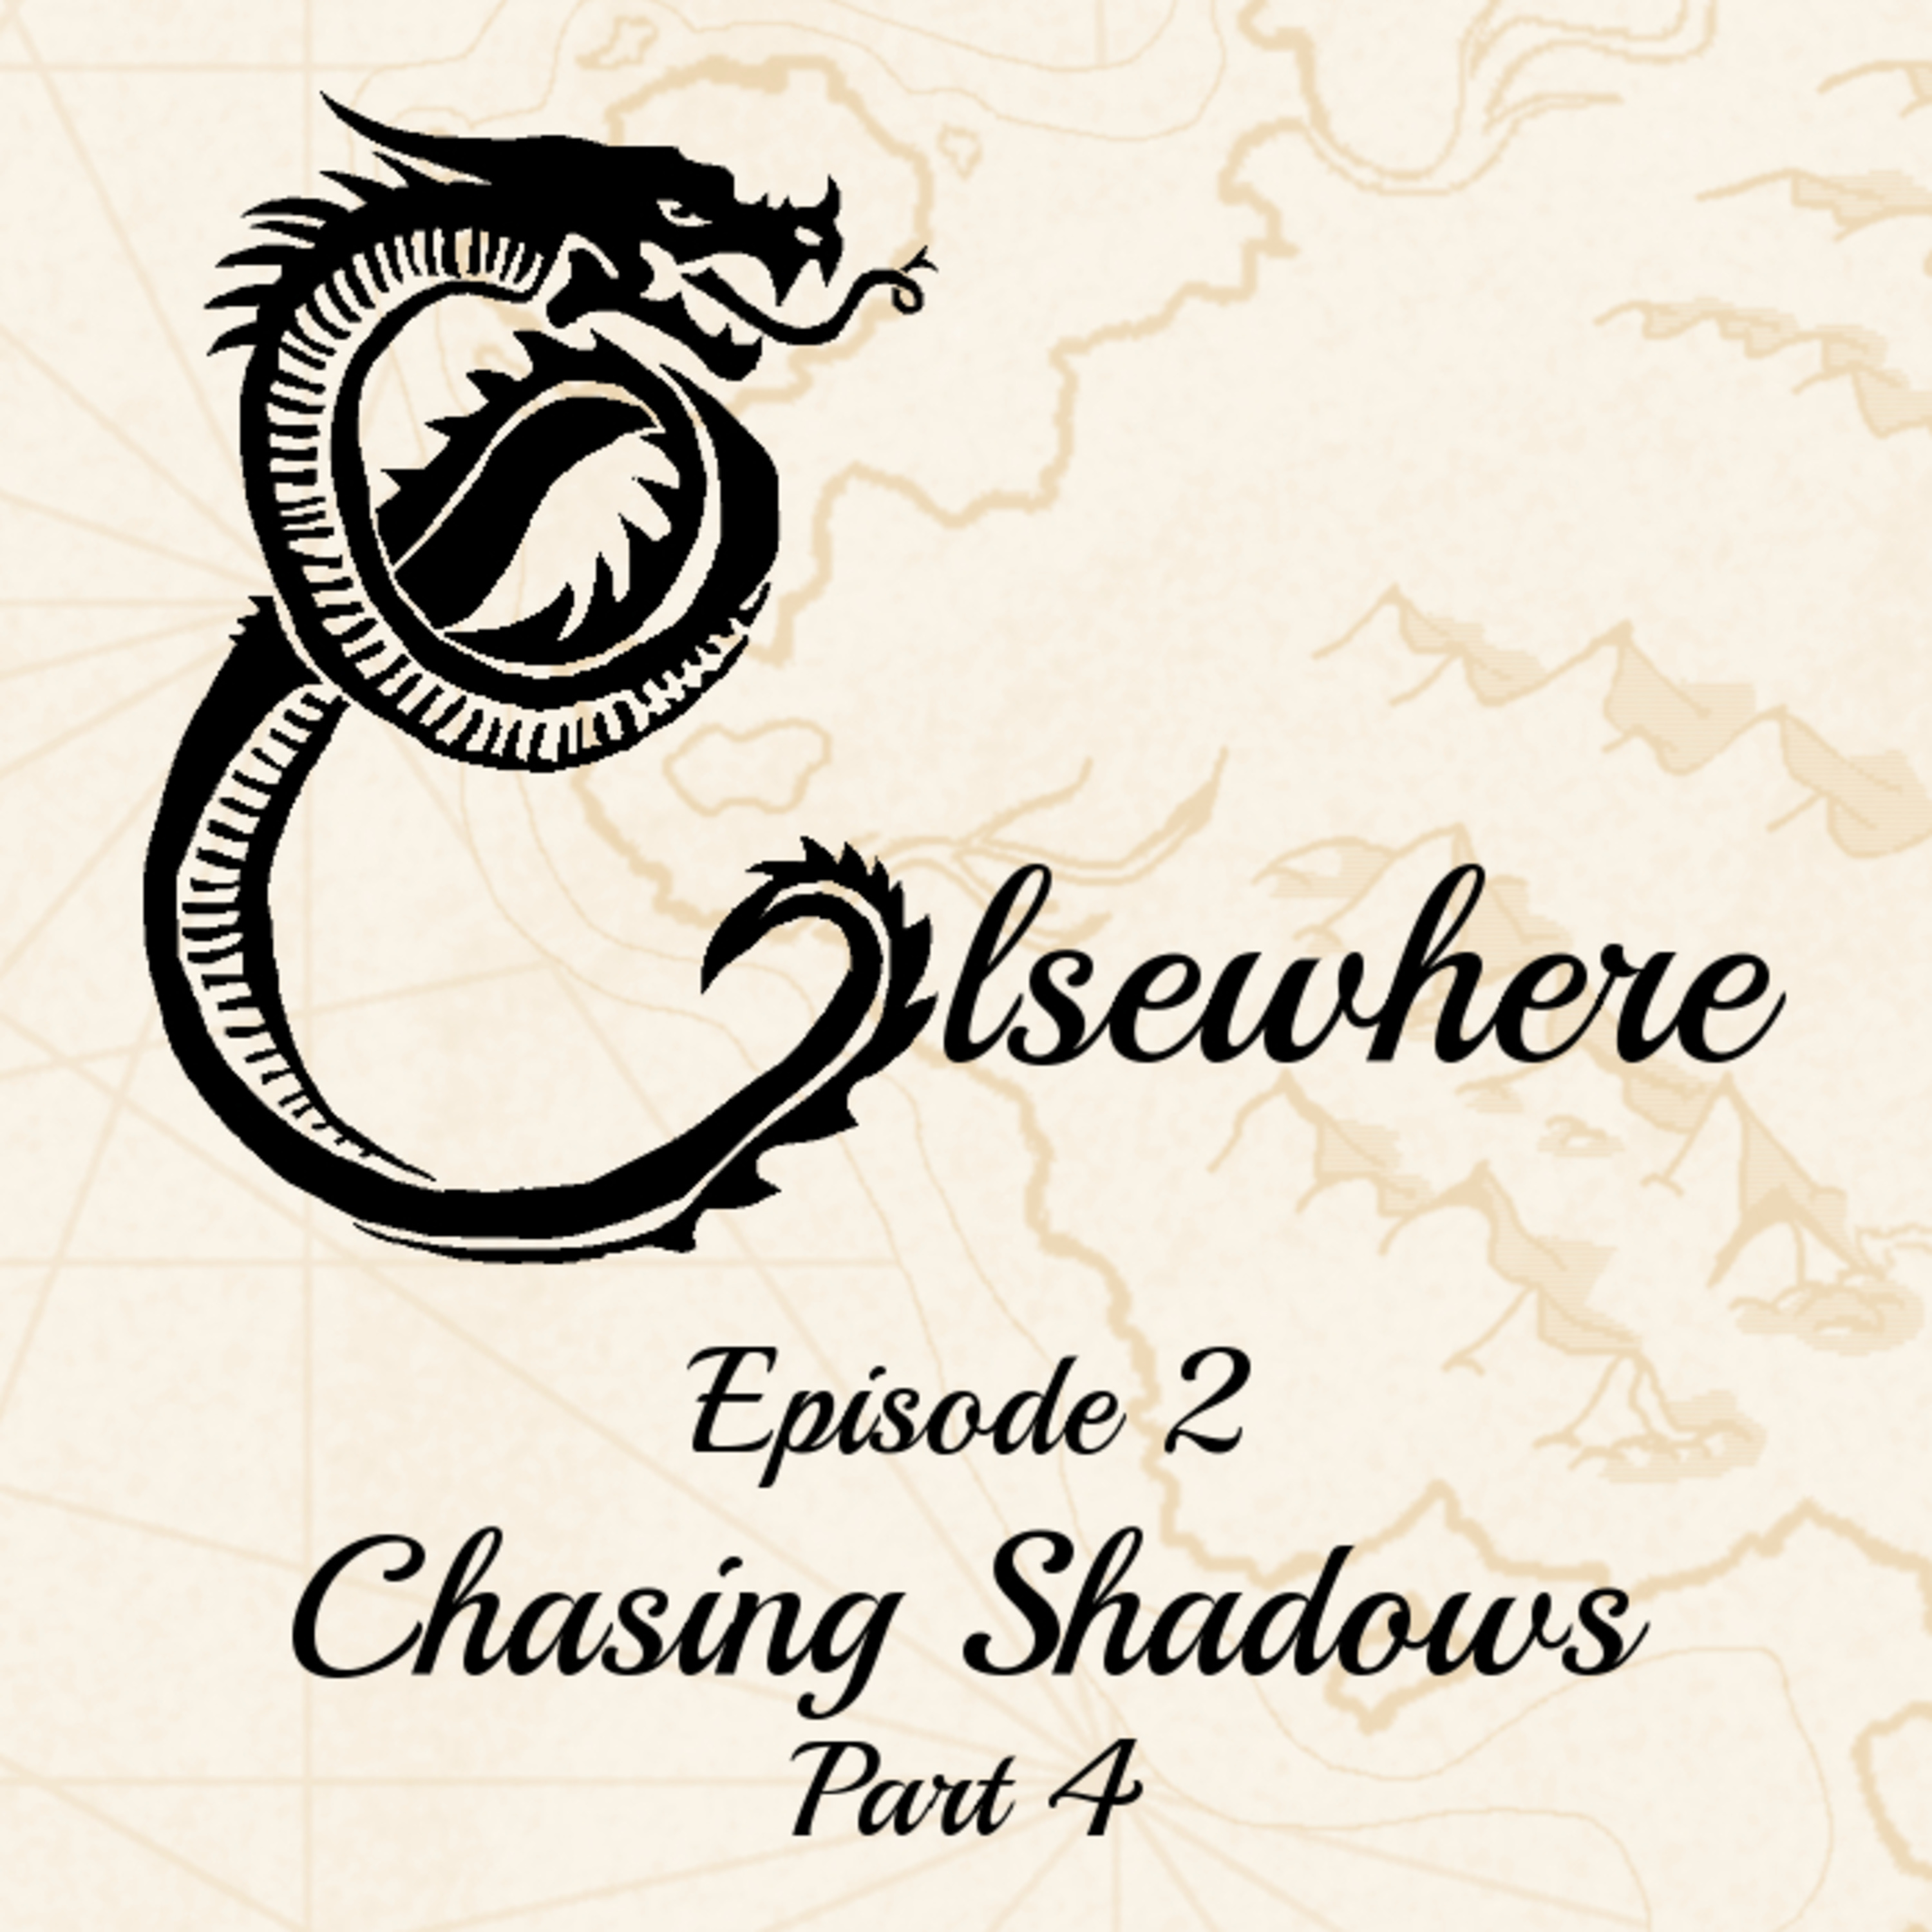 Elsewhere Episode 2 Part 4 Chasing Shadows